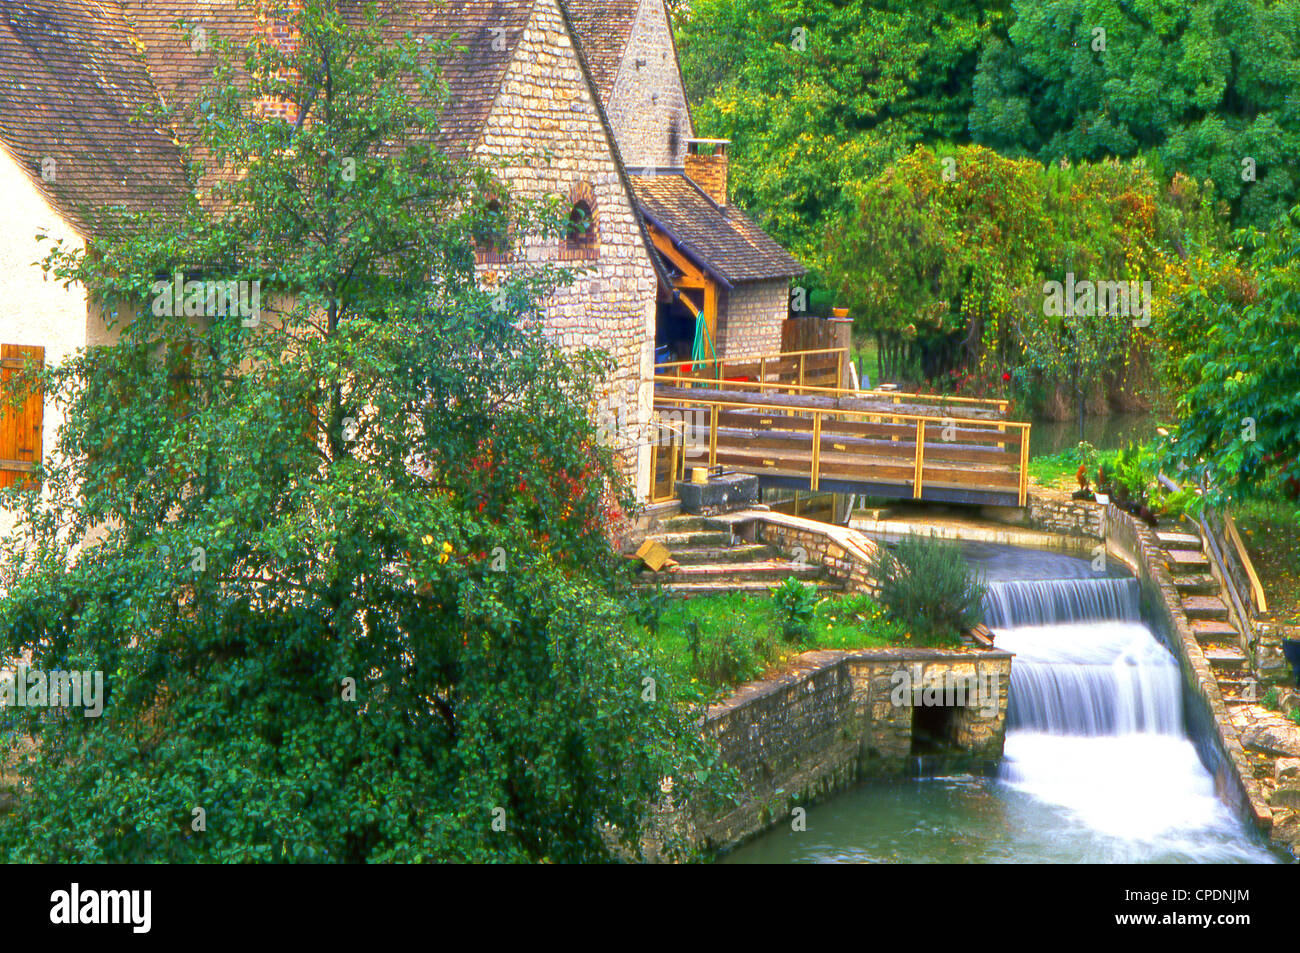 Image of an Old Mill with a waterfall in the town of Avallon in the Burgundy Region of France - Stock Image